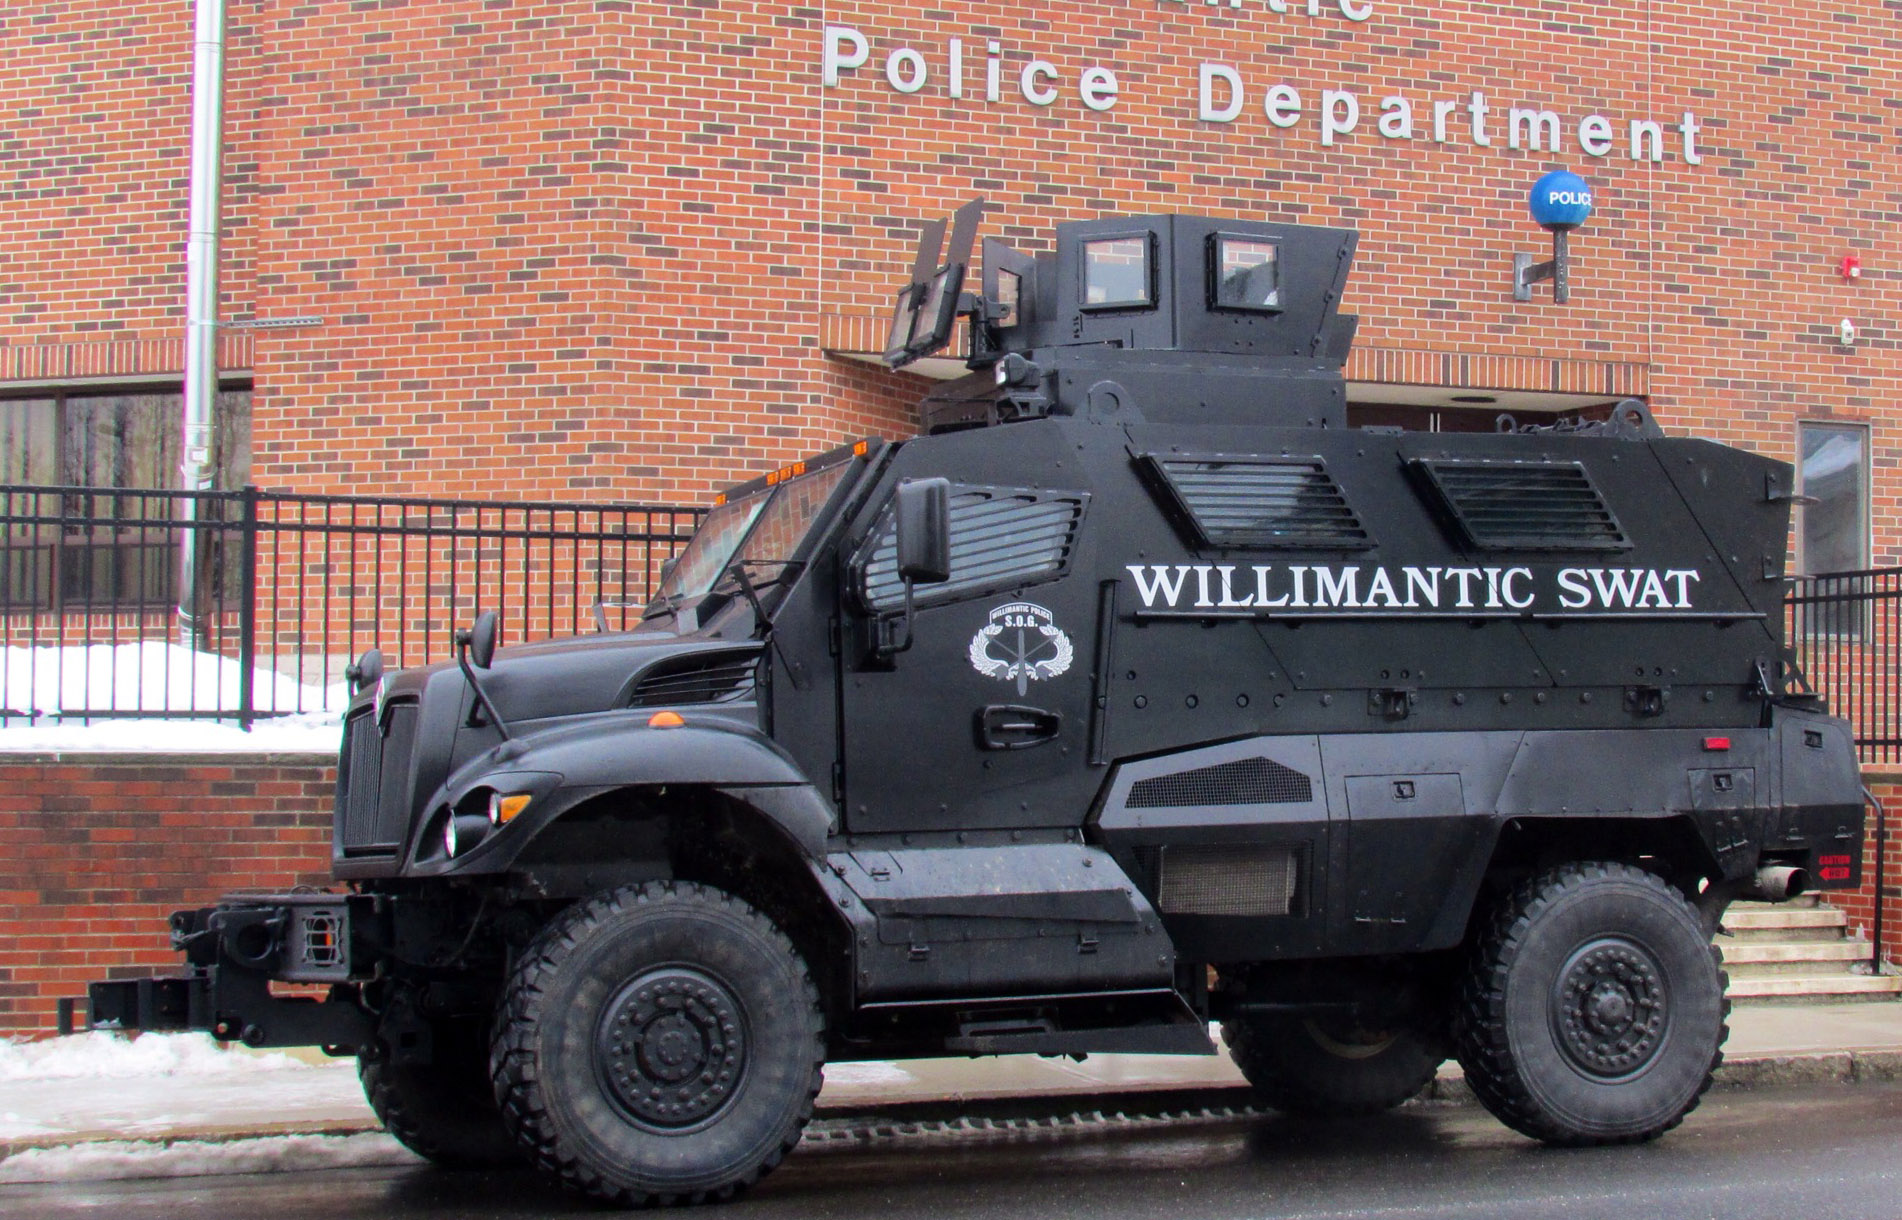 Grenade launchers and other war-fighting equipment militarizes CT police